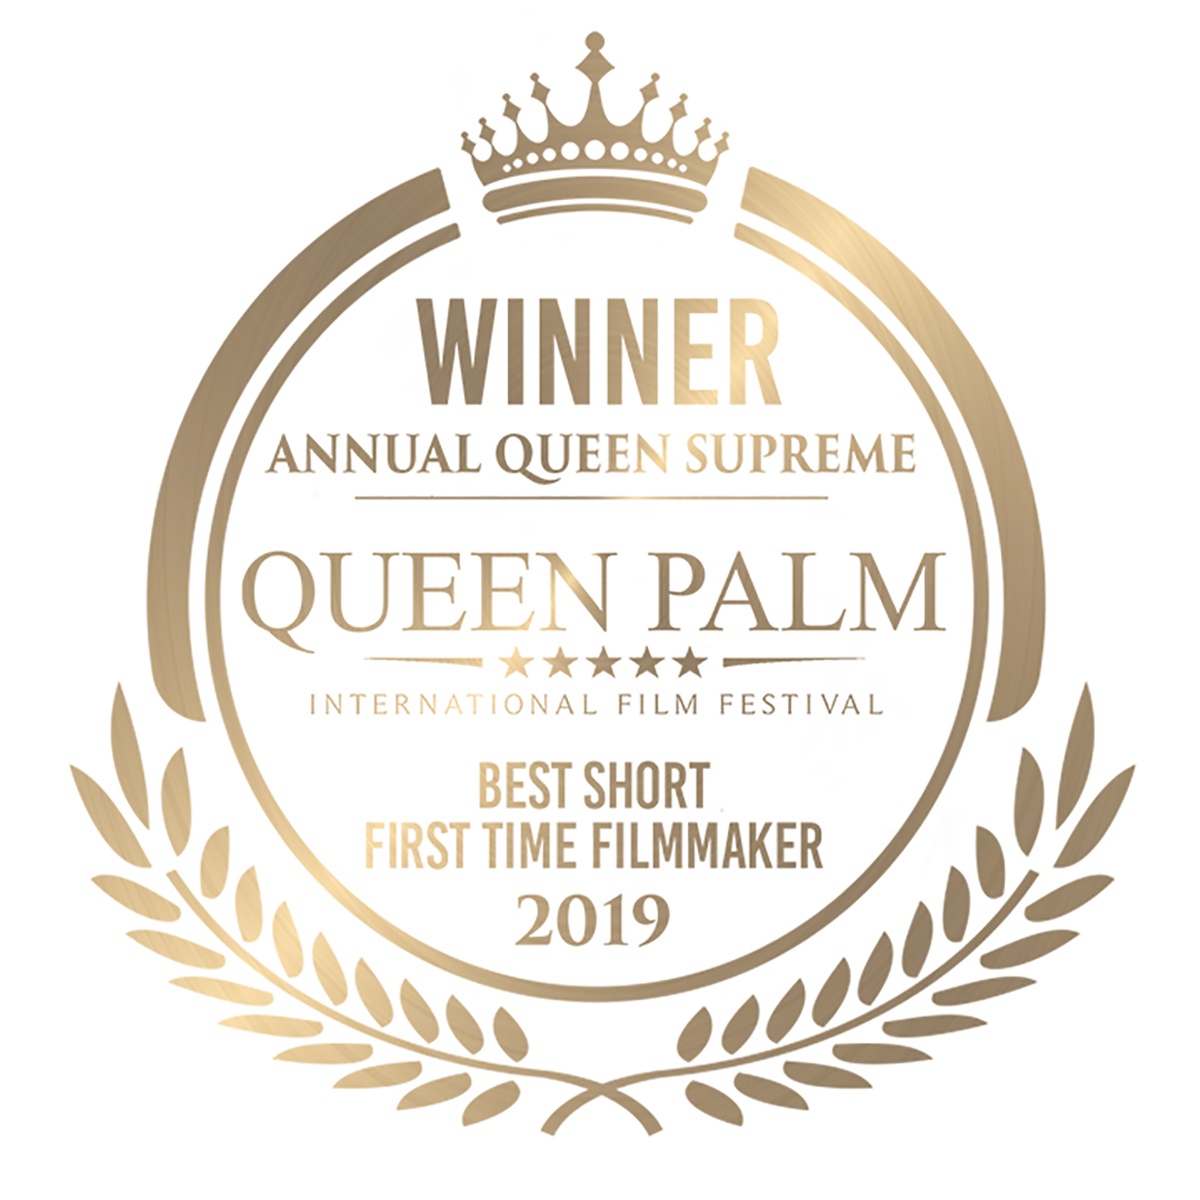 QPIFF Annual Queen Supreme Winner - Best Short - First Time Filmmaker (GOLD).jpg